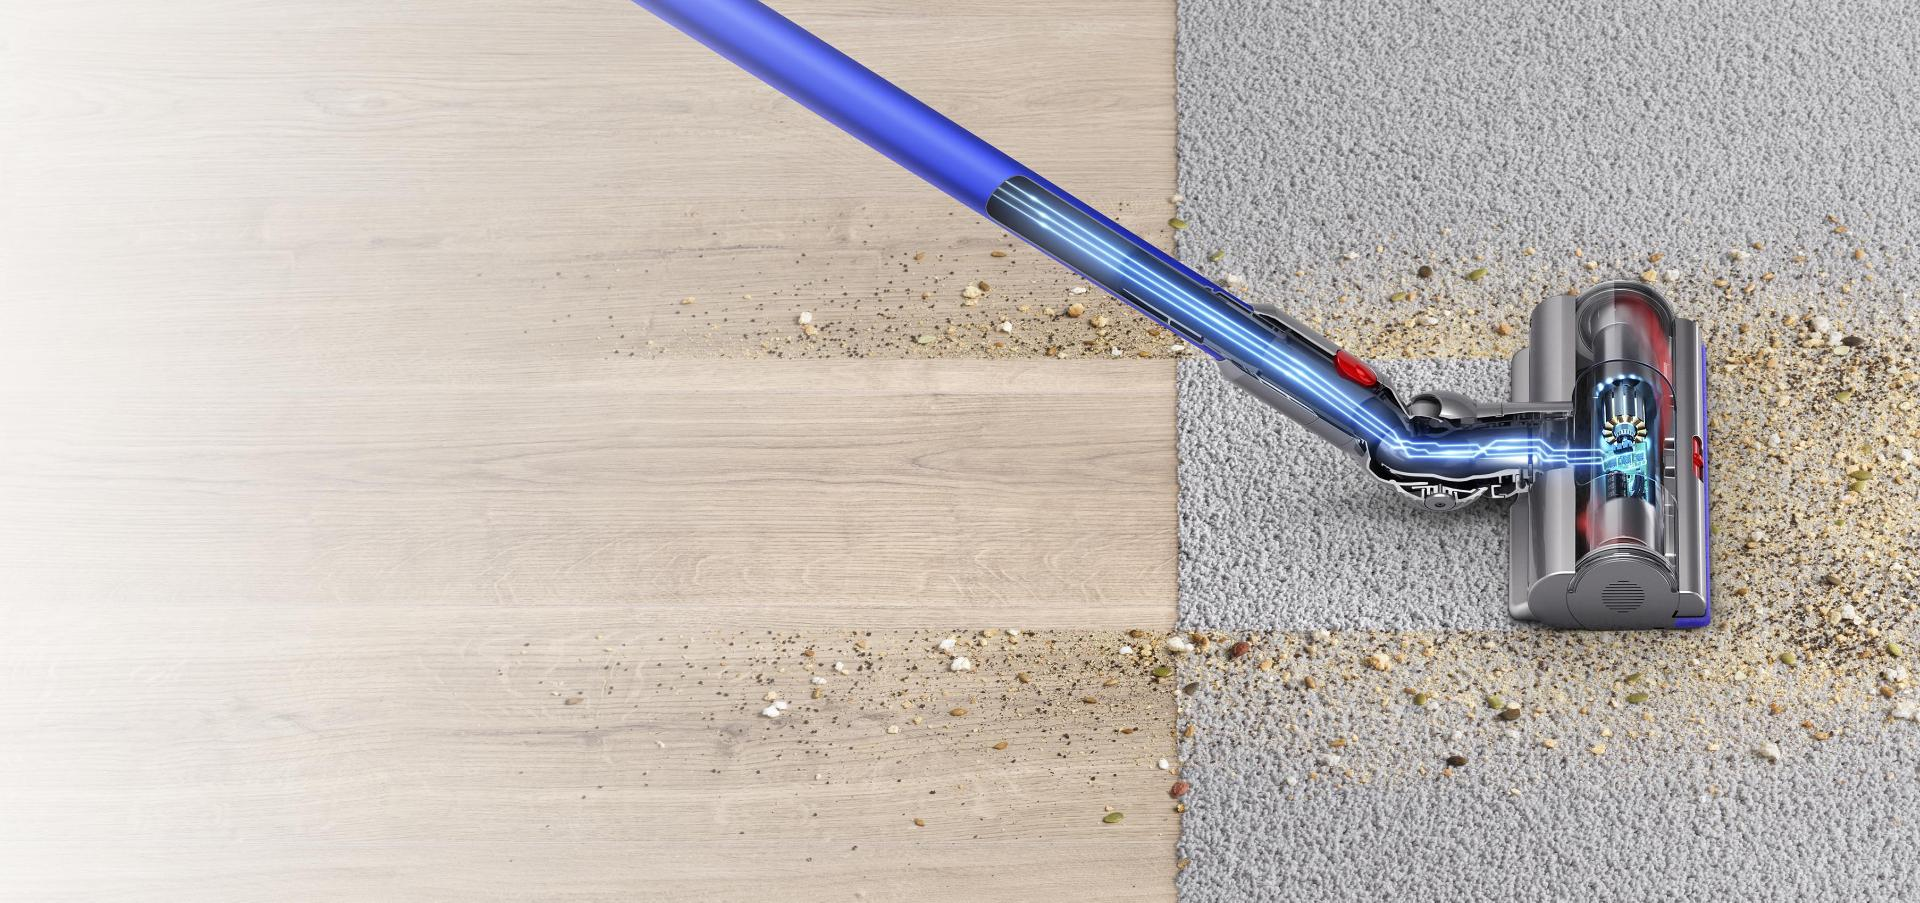 Dyson V11™ vacuum cleaner head moving from hard floor to carpet